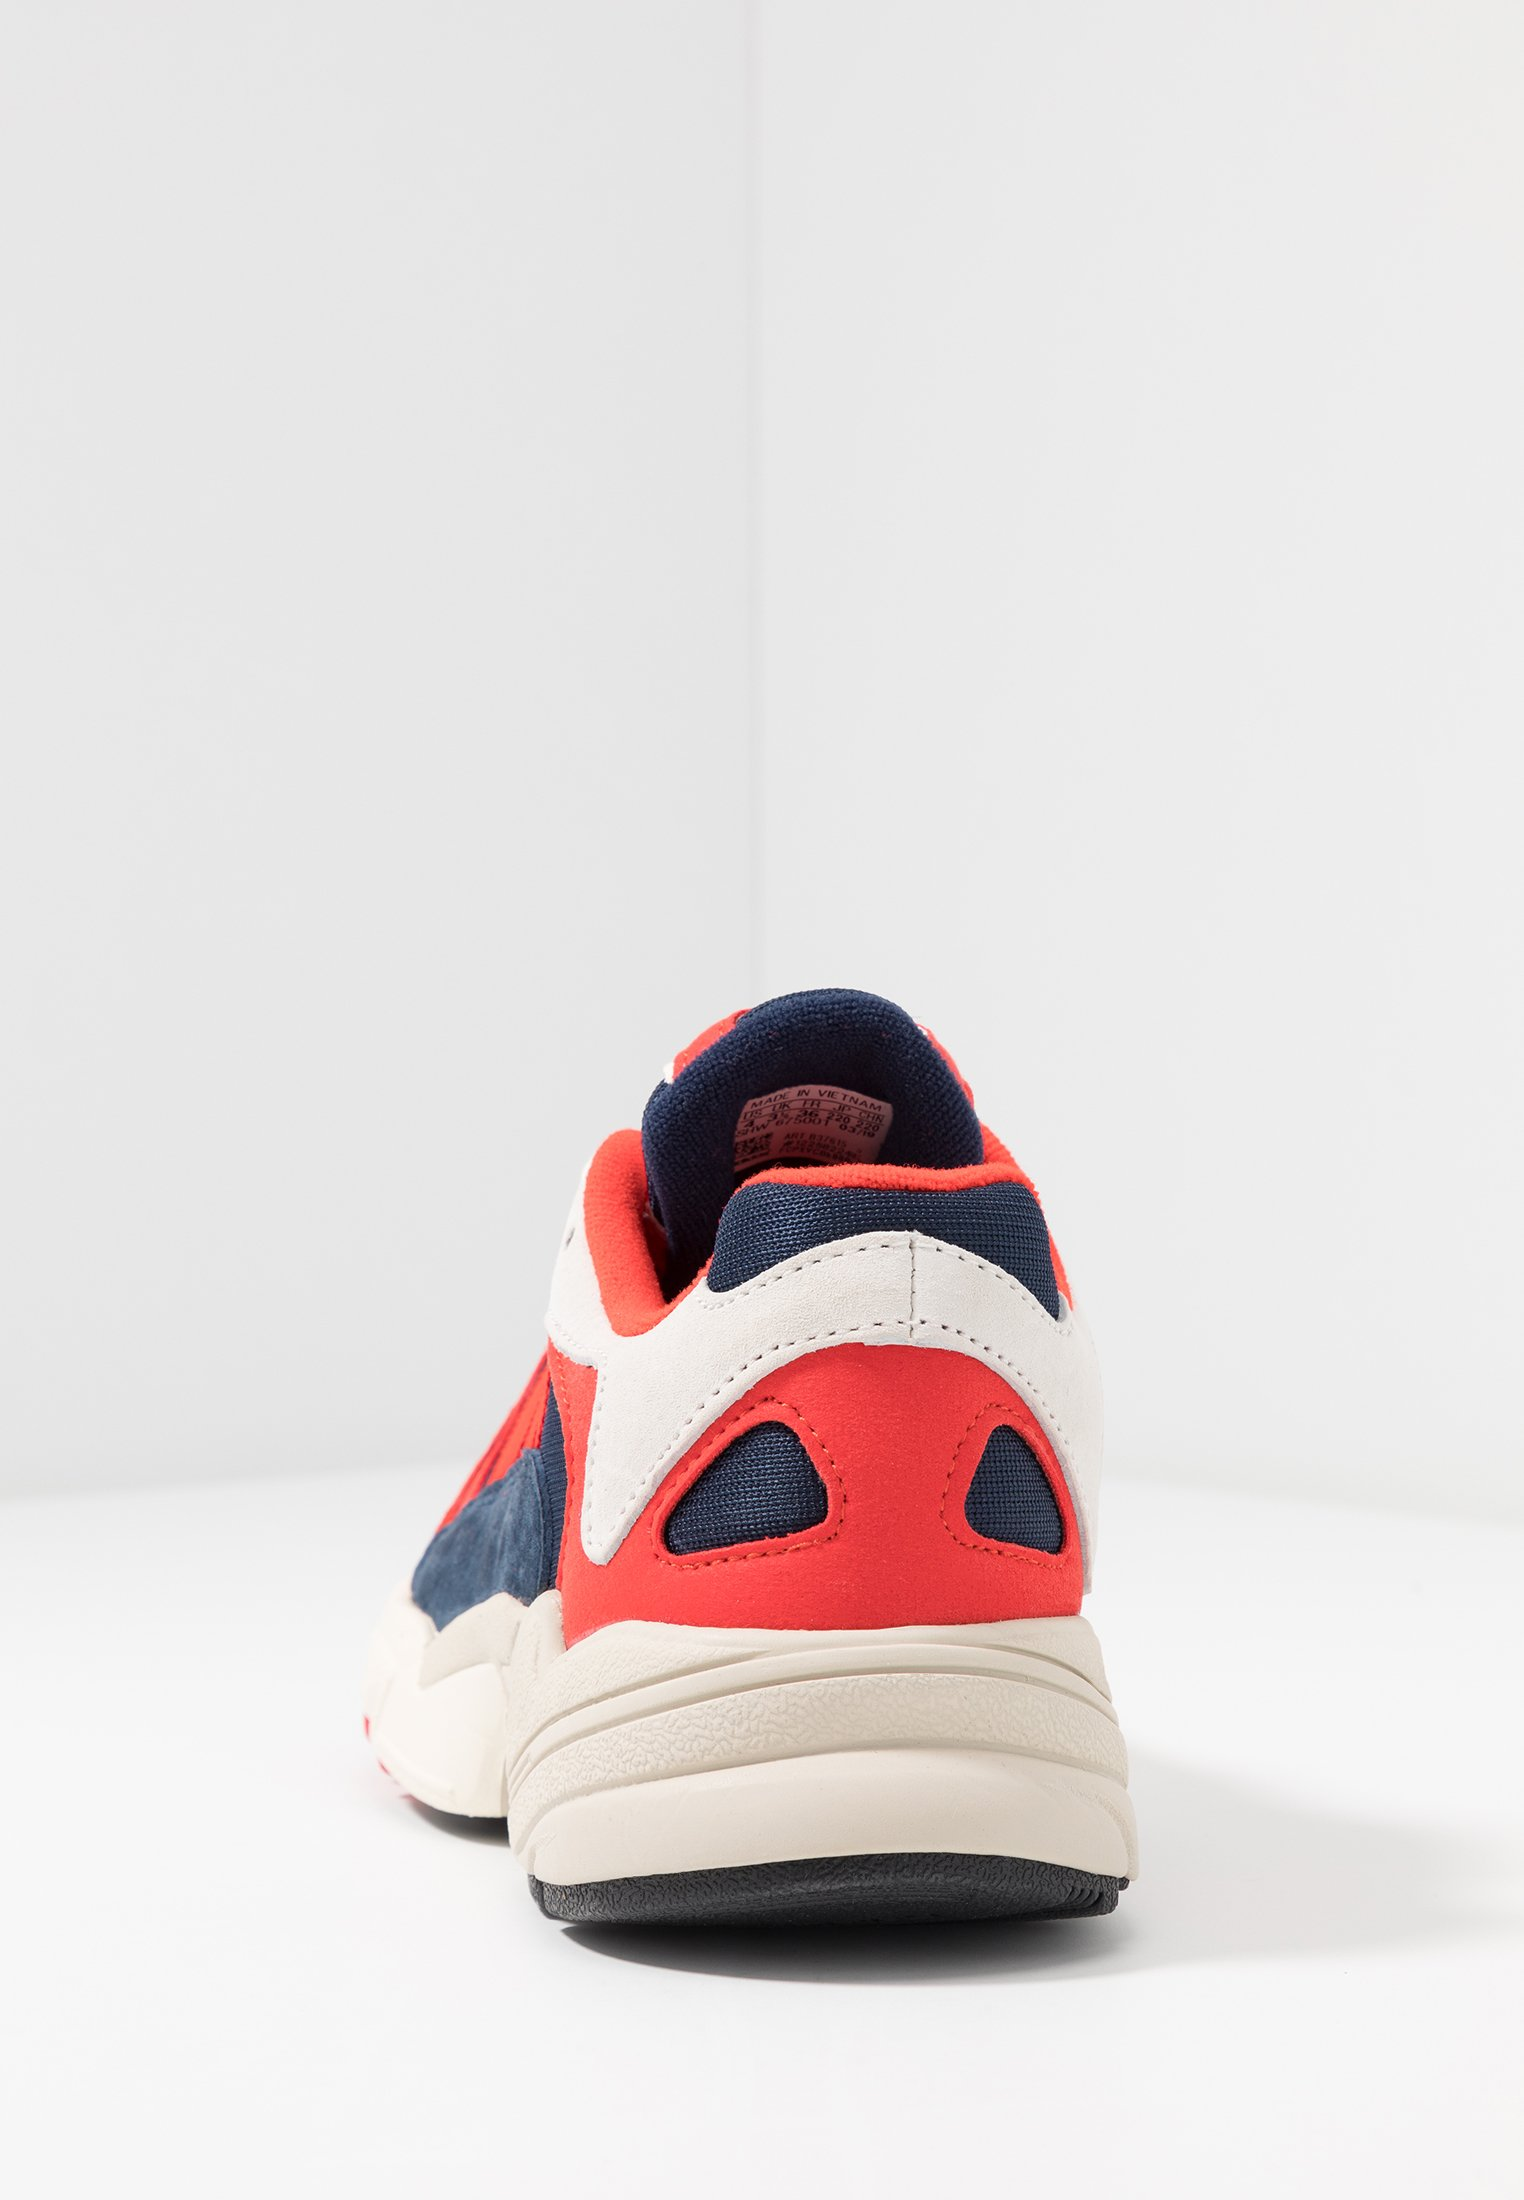 adidas Originals YUNG-1 TORSION SYSTEM RUNNING-STYLE SHOES - Sneakers basse - white/core black/collegiate navy - Scarpe da donna Bello